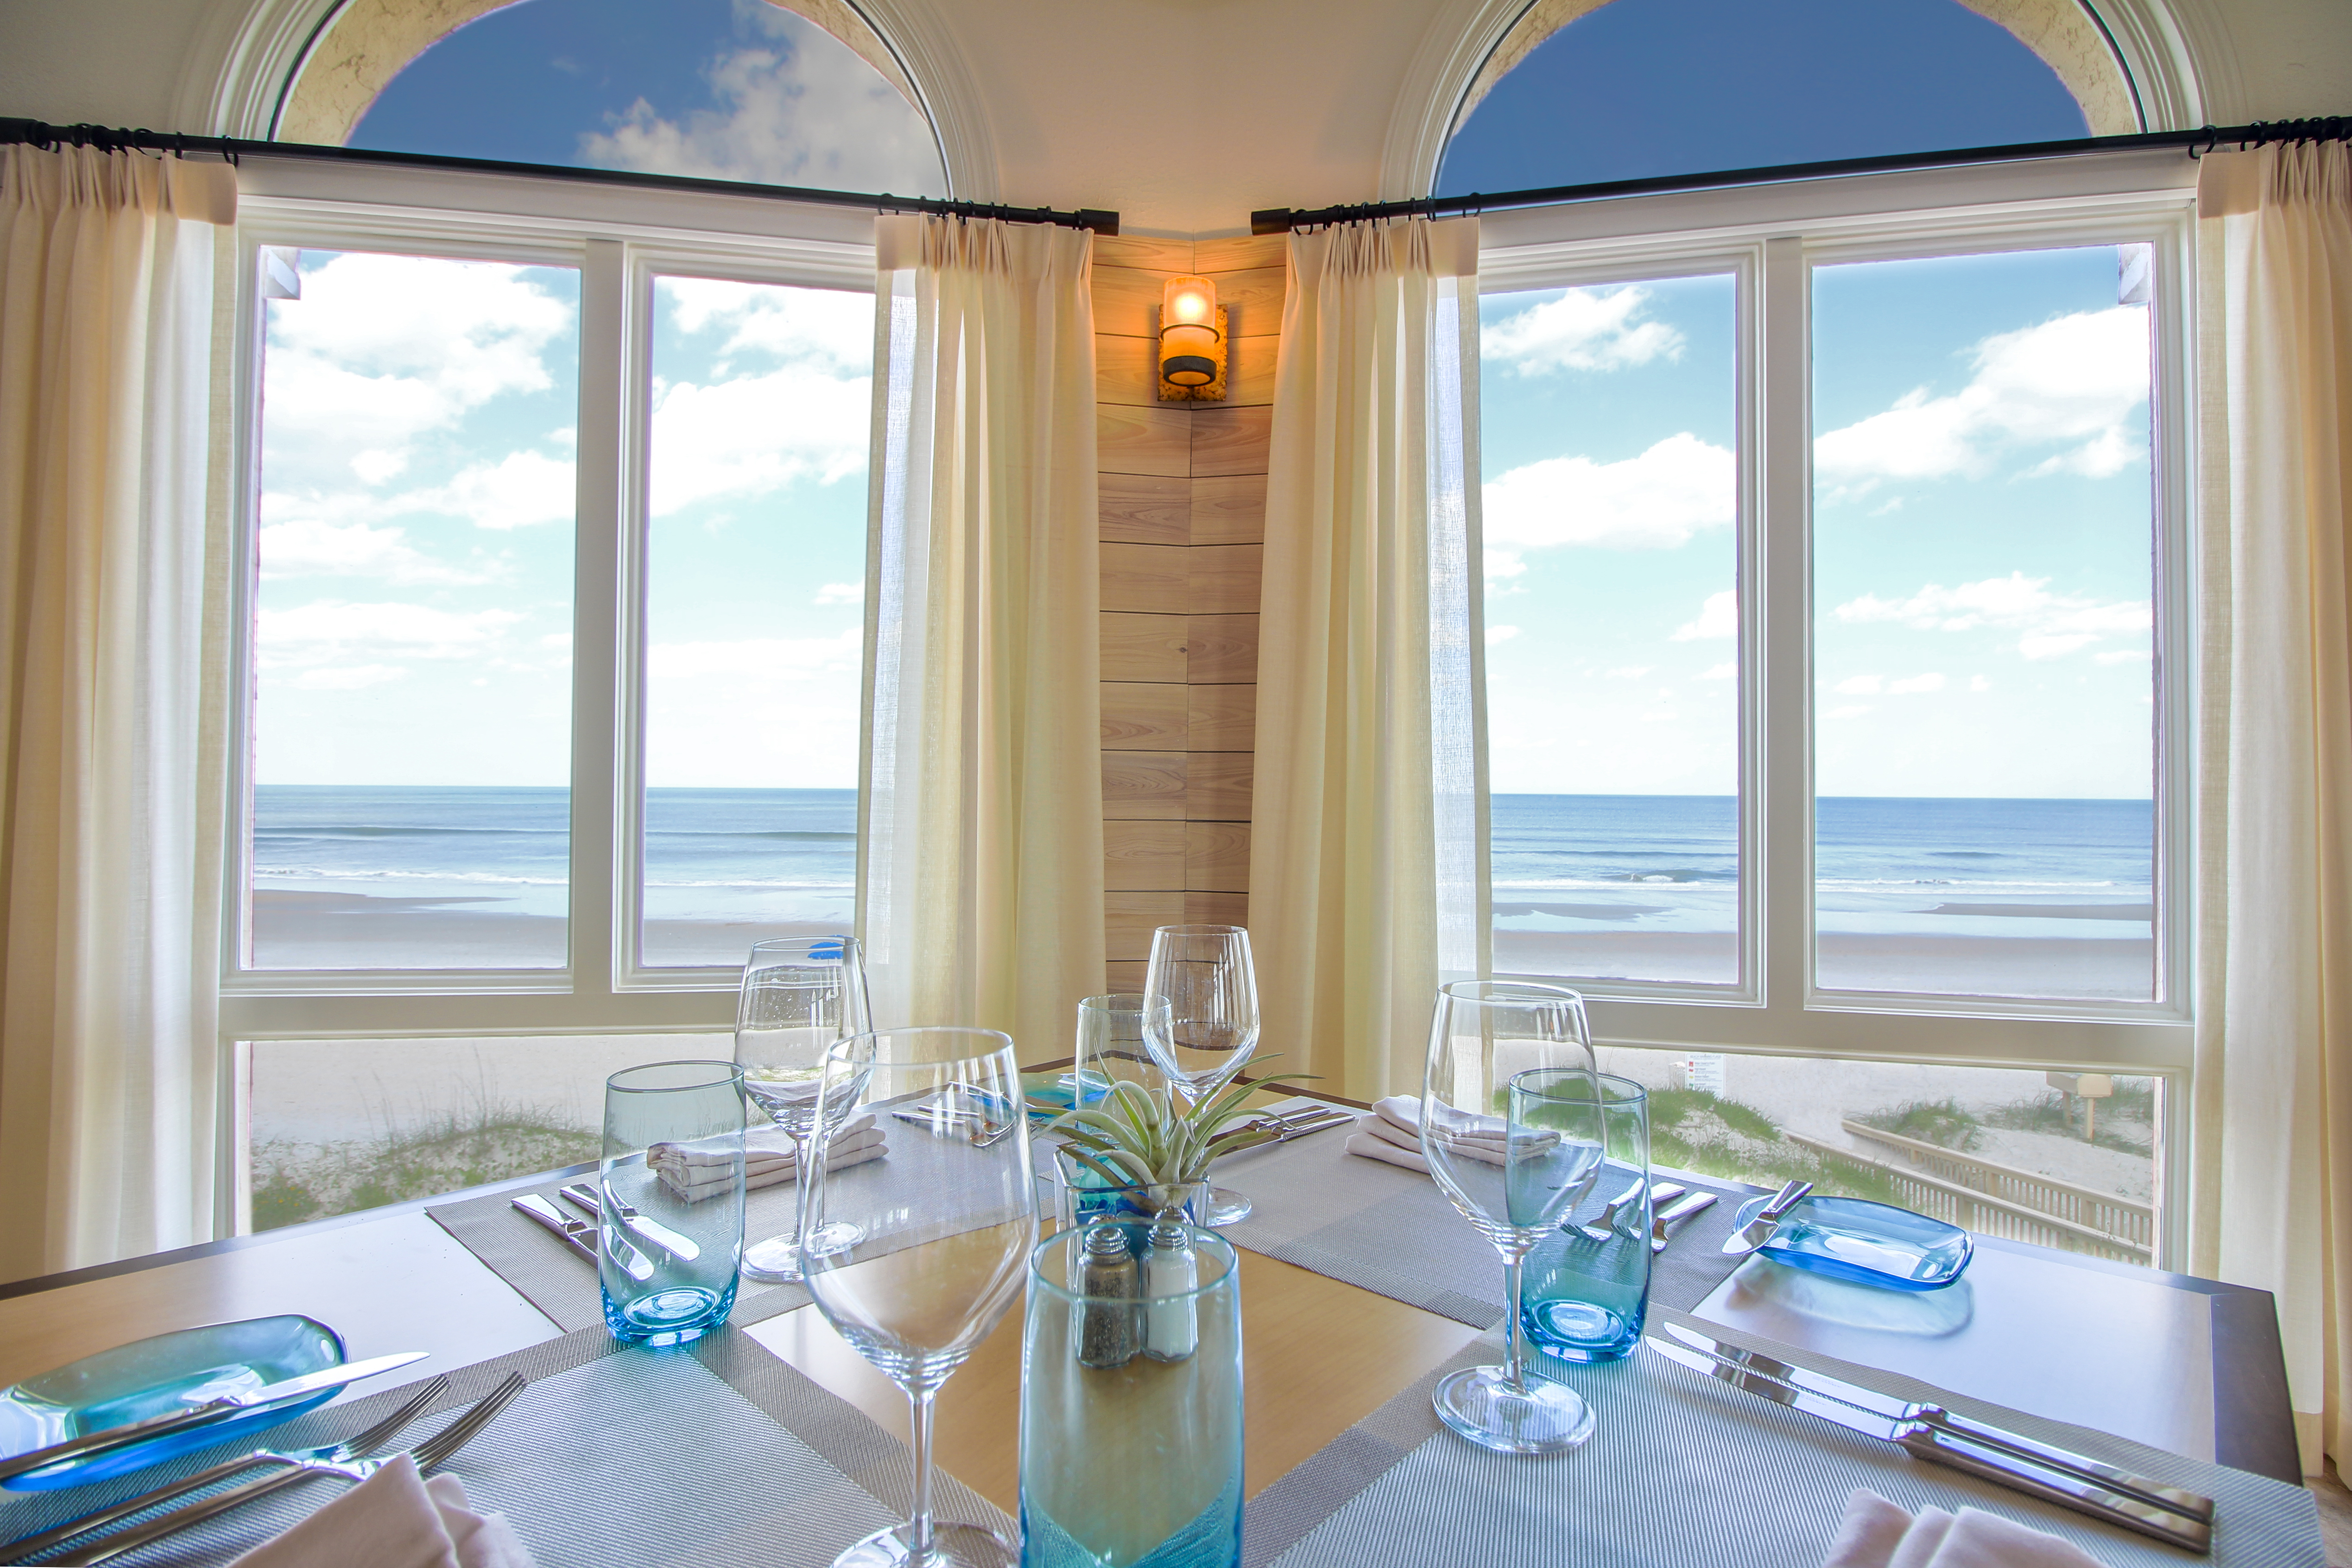 Sea View Grille